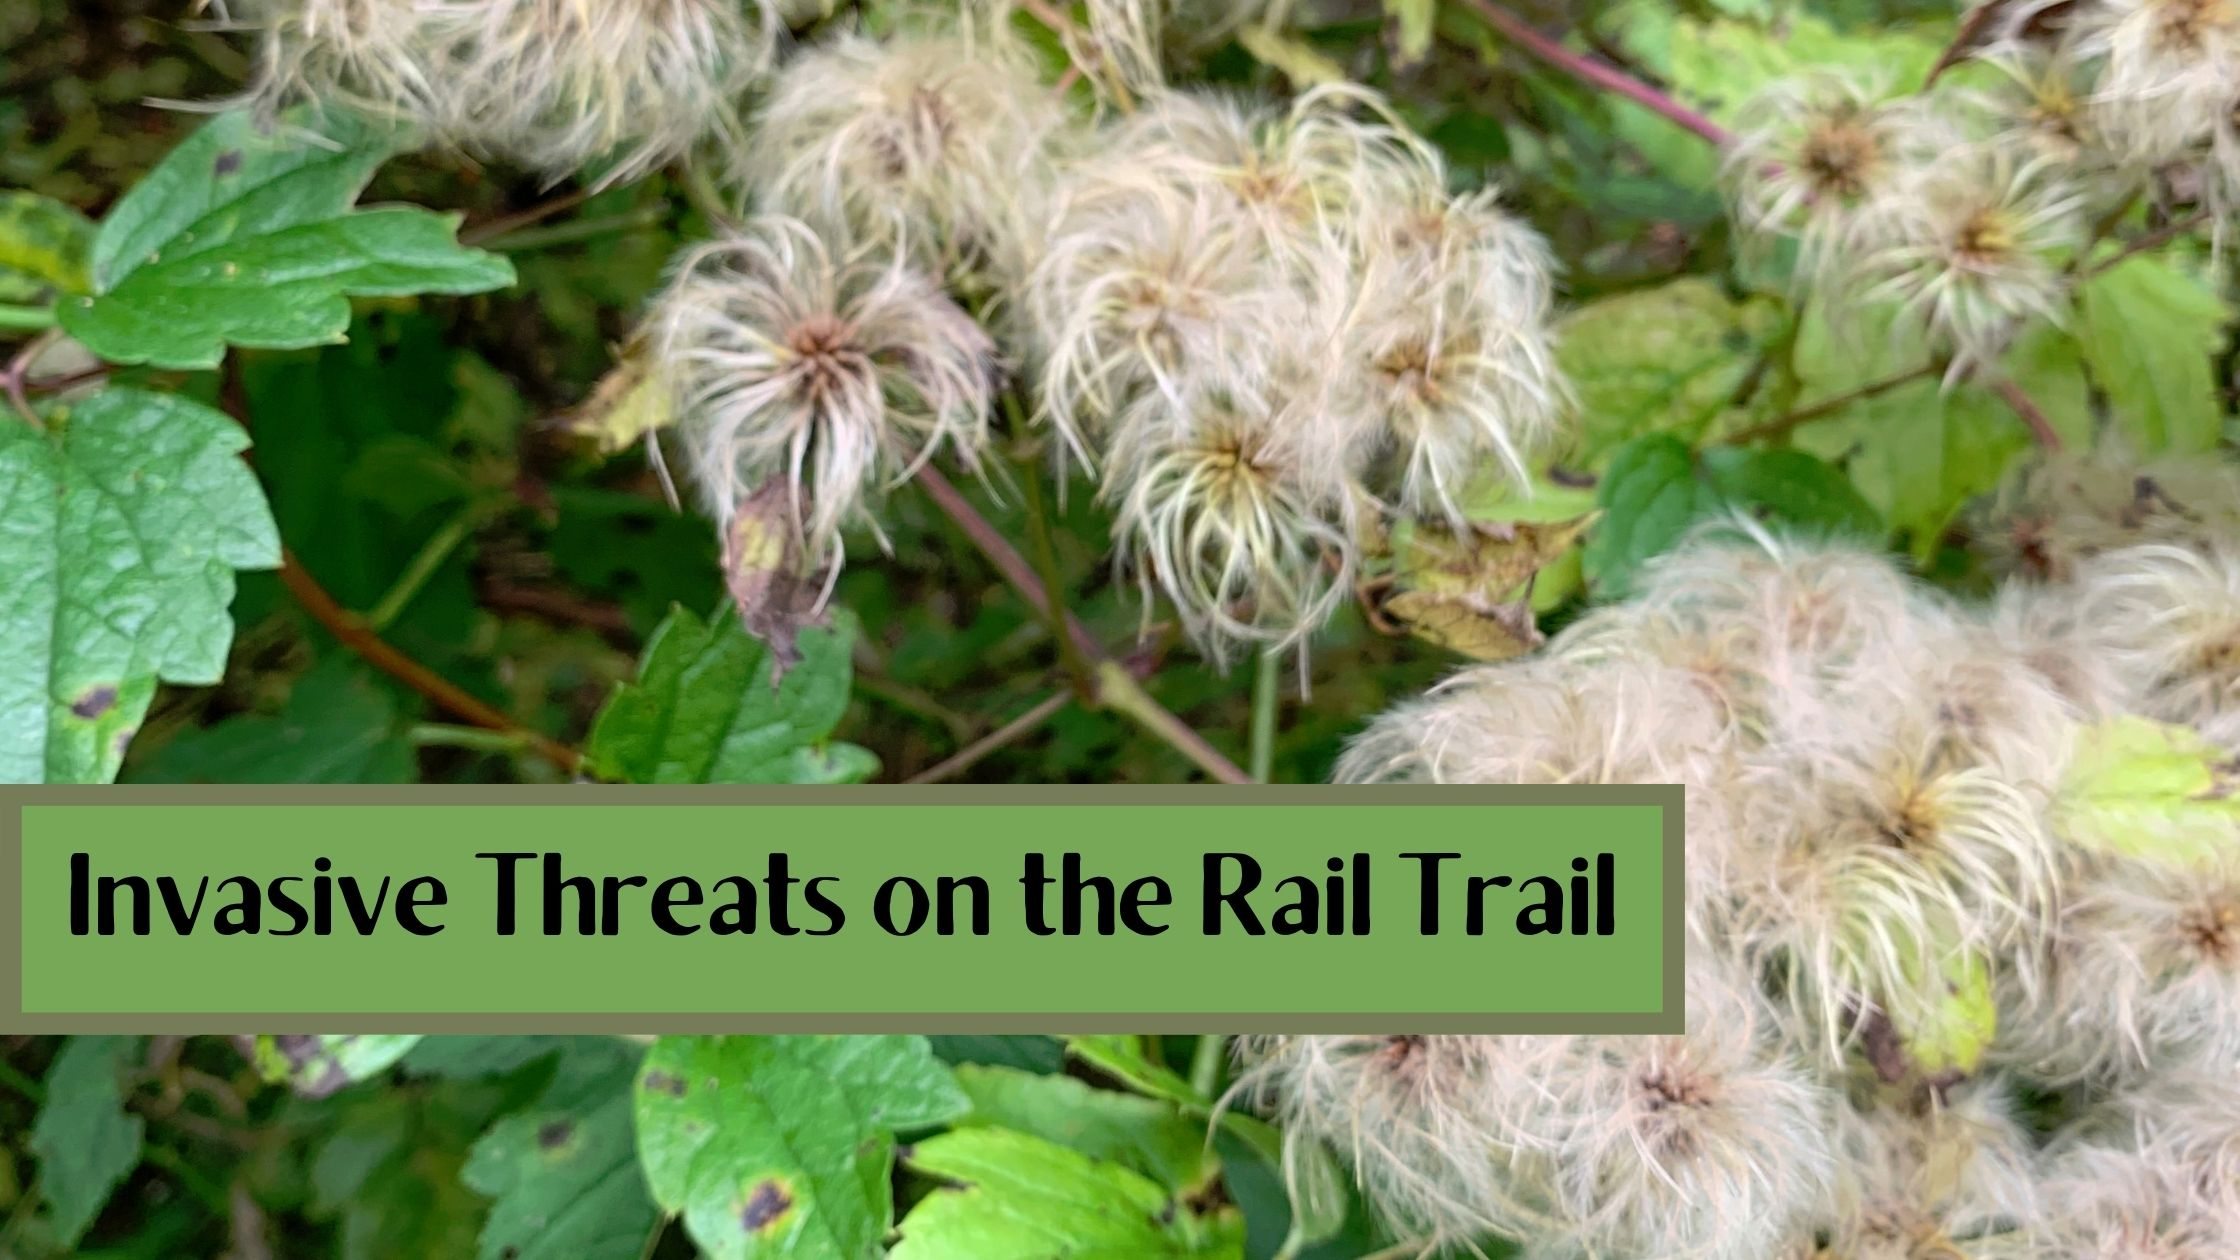 Invasive Threats on the Rail Trail